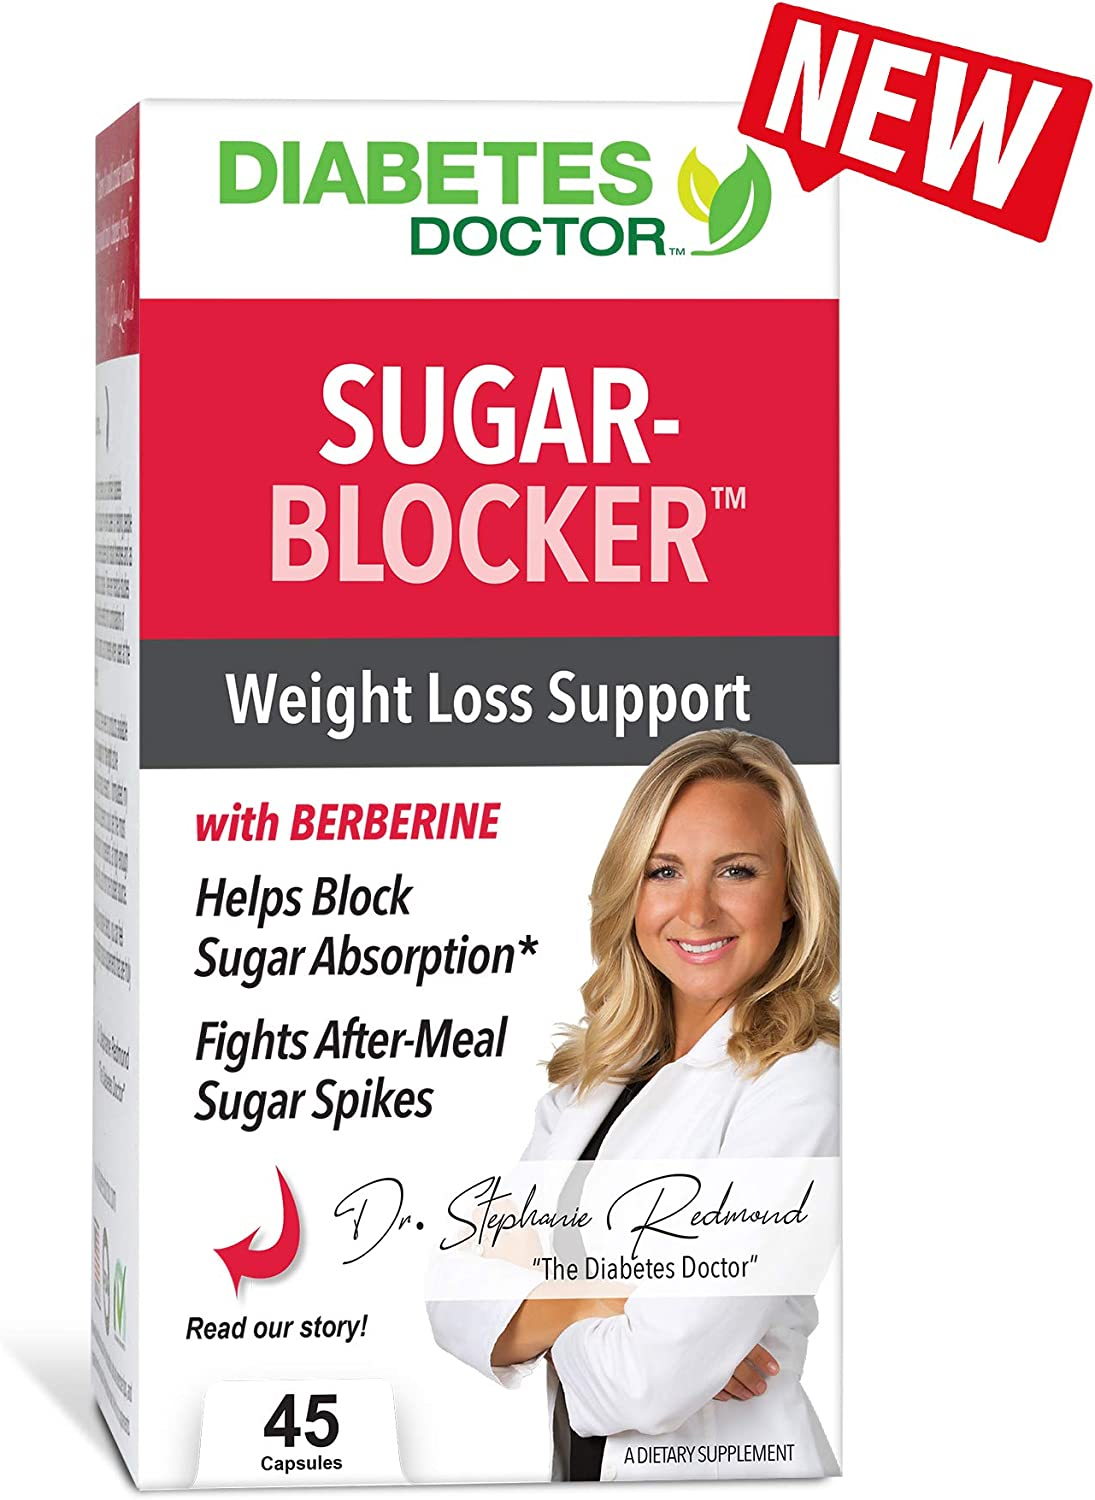 Diabetes Doctor Mealtime Sugar-Blocker – Reduce Blood Sugar Spikes and Carbohydrate Absorption -Stable Blood Glucose Levels for Type 2 Diabetes Support and Weight Loss Support